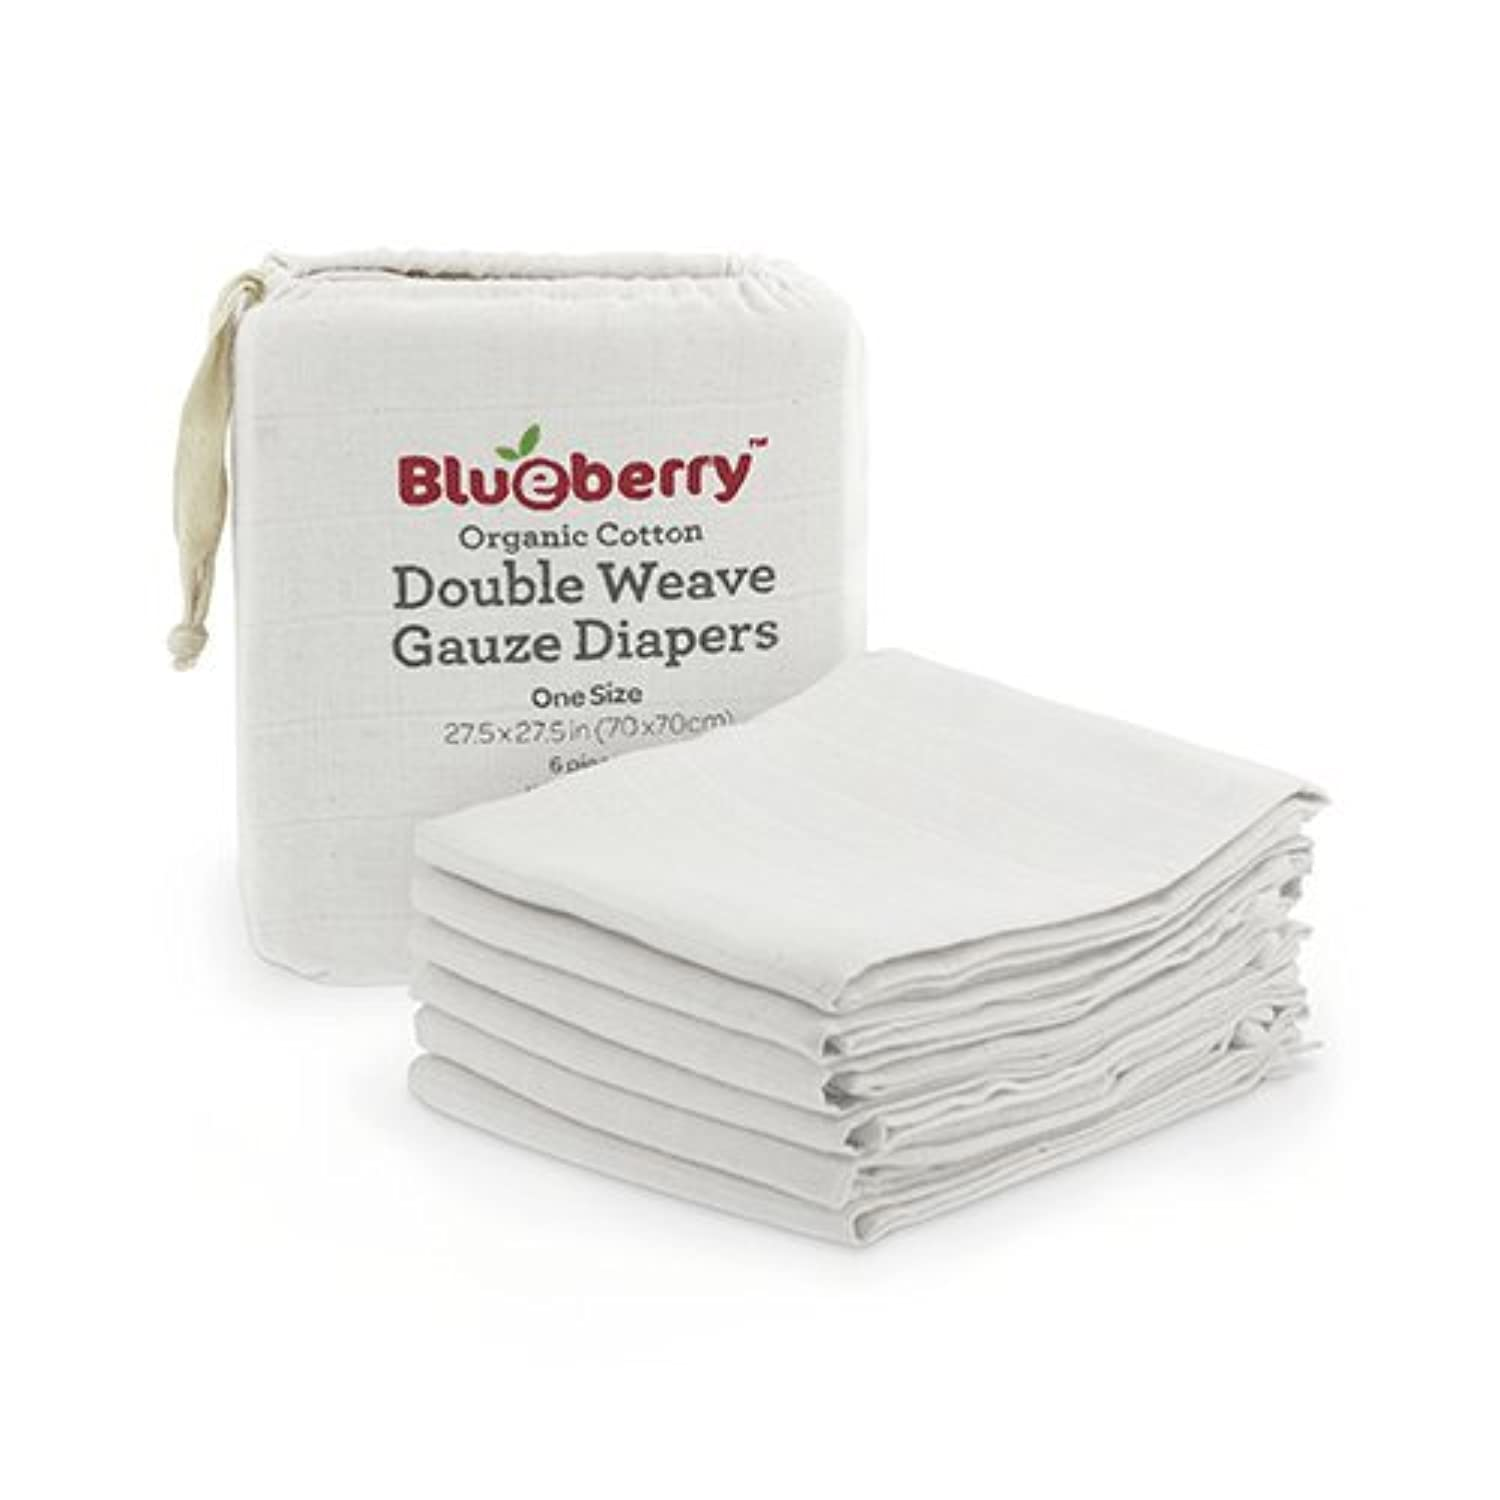 Blueberry Organic Gauze Diapers - 6 Pack White by Blueberry [並行輸入品]